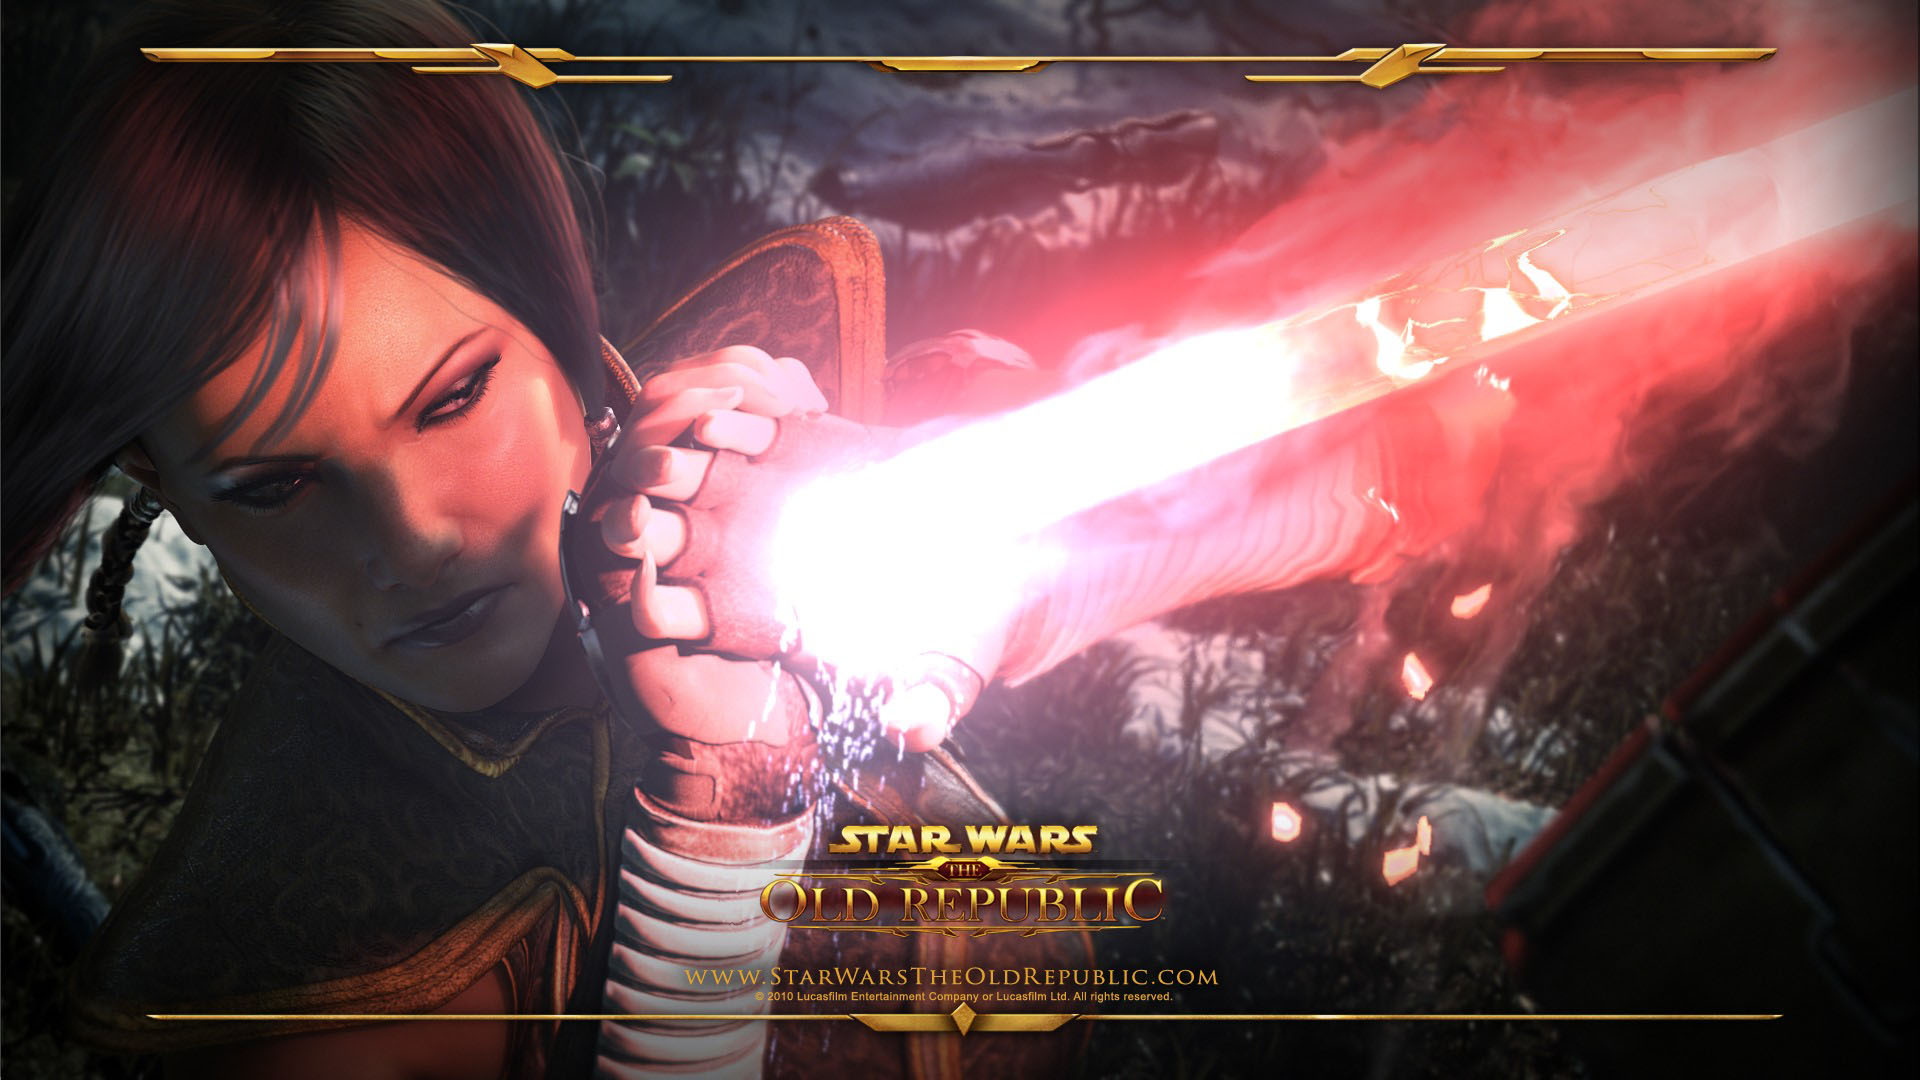 Star Wars the Old Republic widescreen